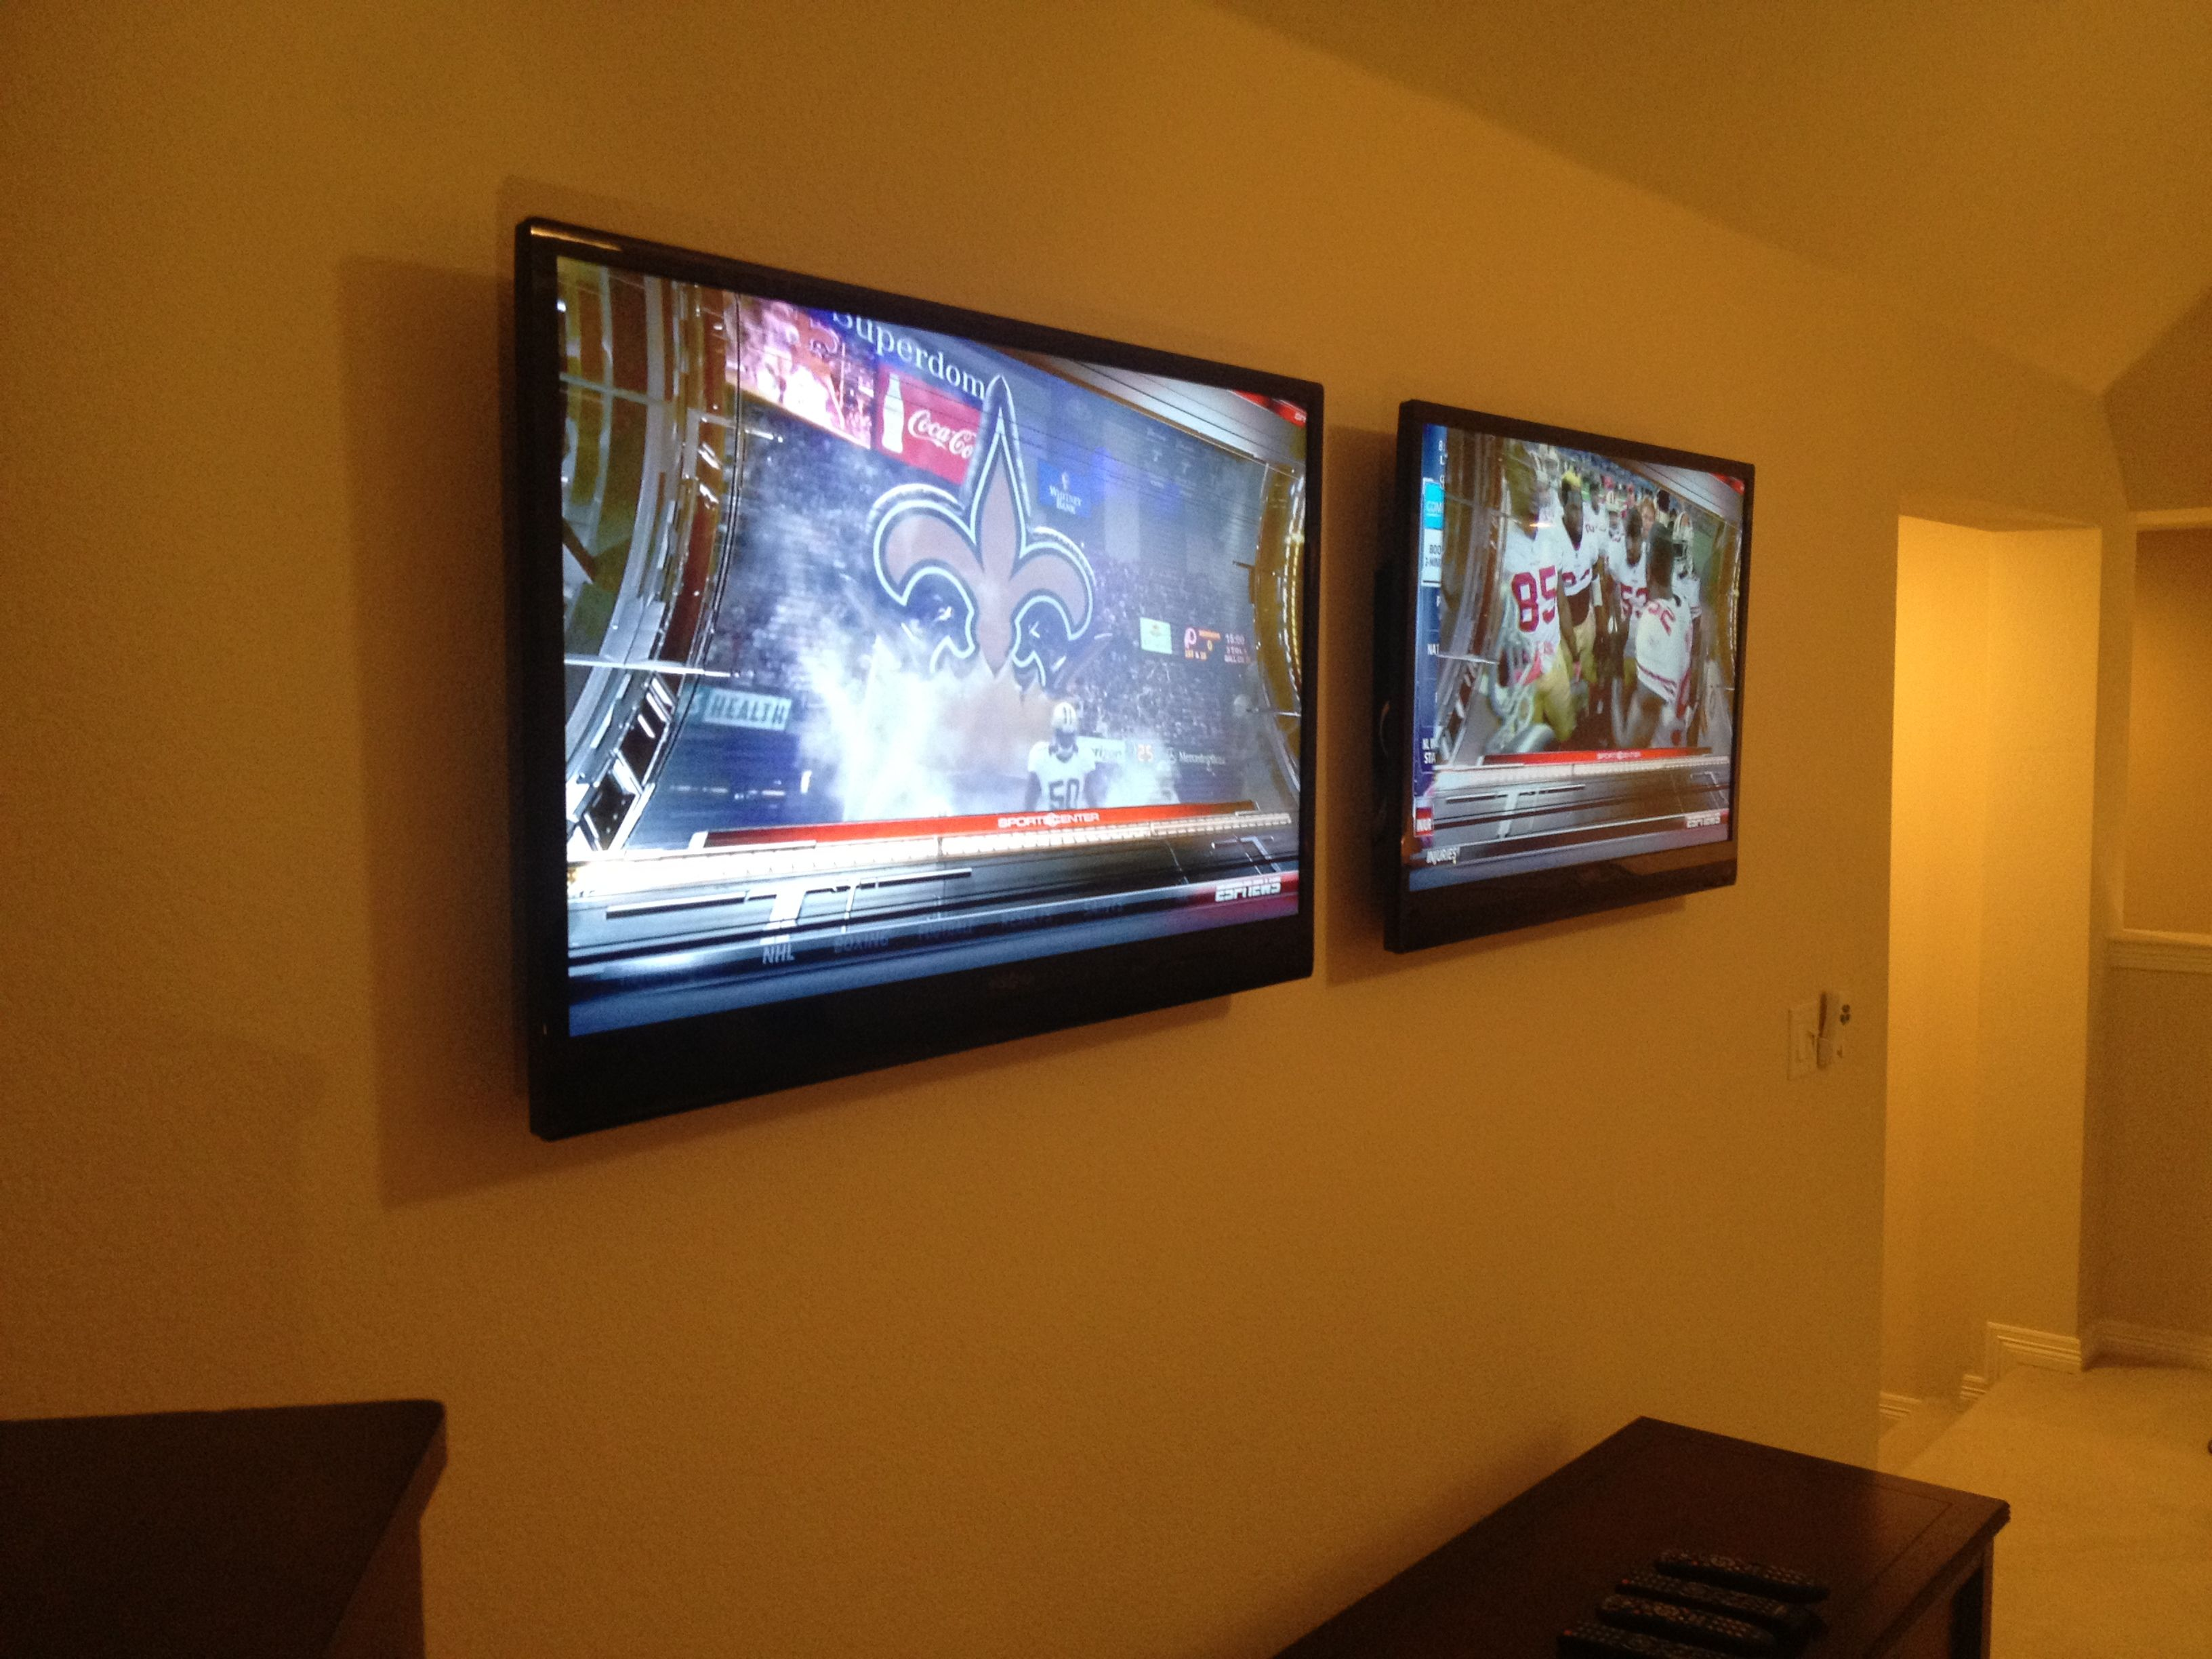 Gameday Will Never Be The Same With These Two Tvs Mounted In The Game Room Catch Both Your Favorite Games At The Same Time Game Room Kids Room Art Mounted Tv #two #tv #living #room #setup